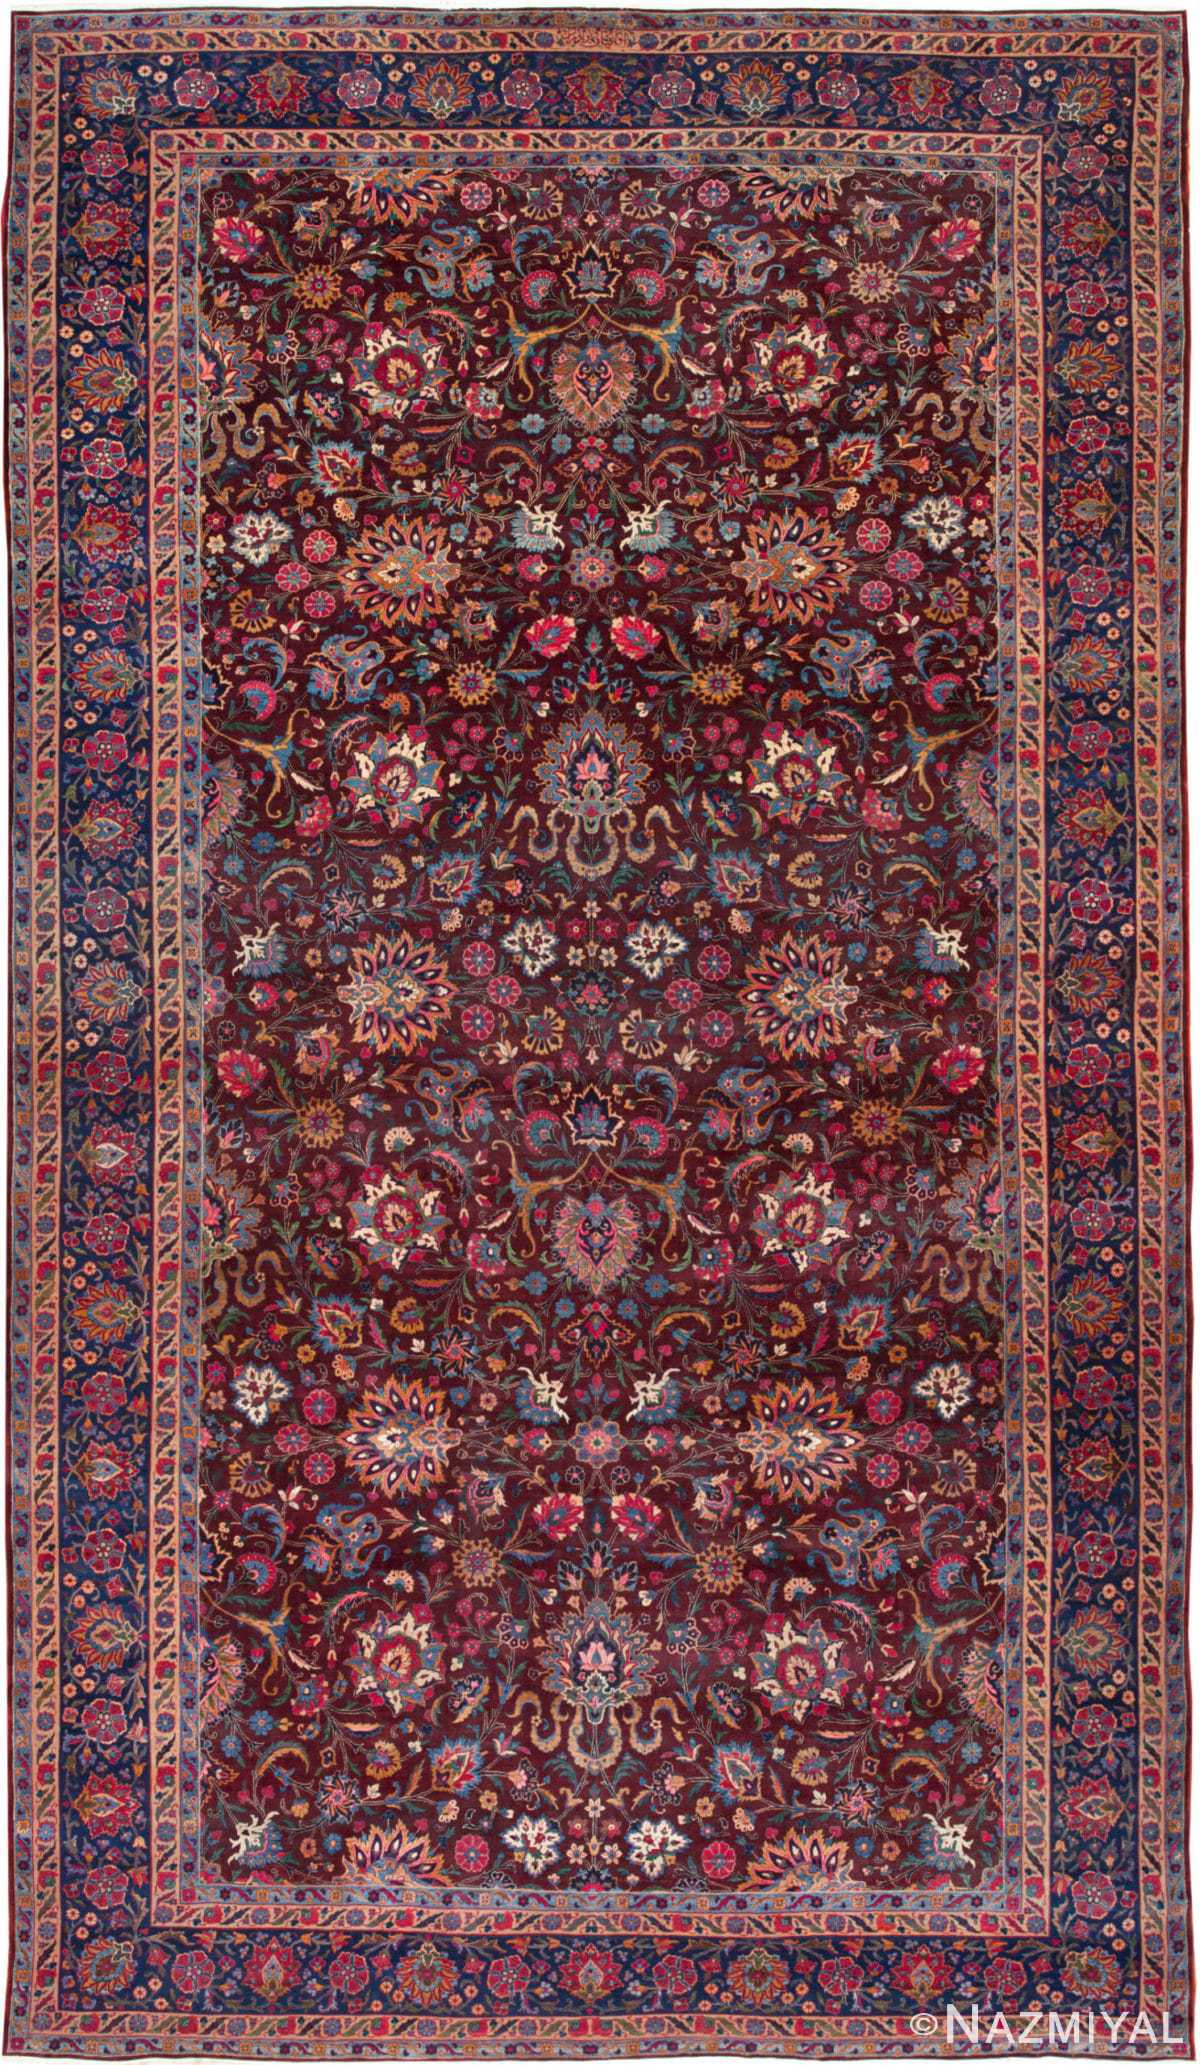 Aubergine Antique Persian Kerman Rug 44830 by Nazmiyal